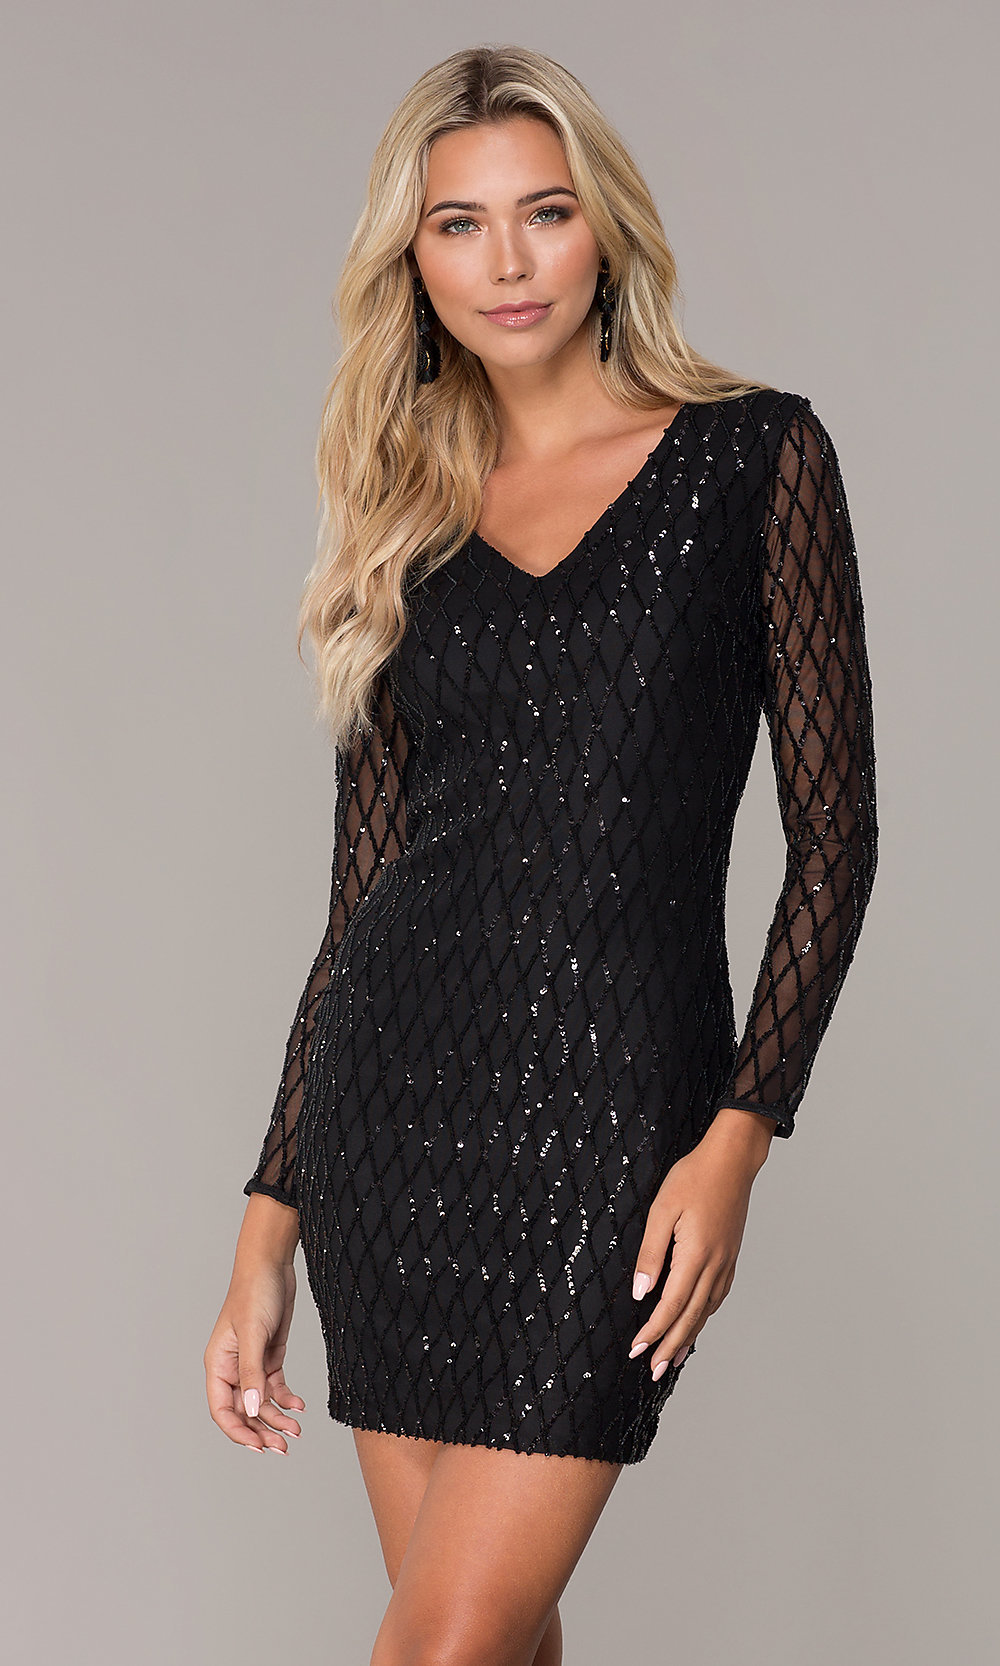 77bd9ef266 Sequined Black Short Holiday Party Dress by Simply